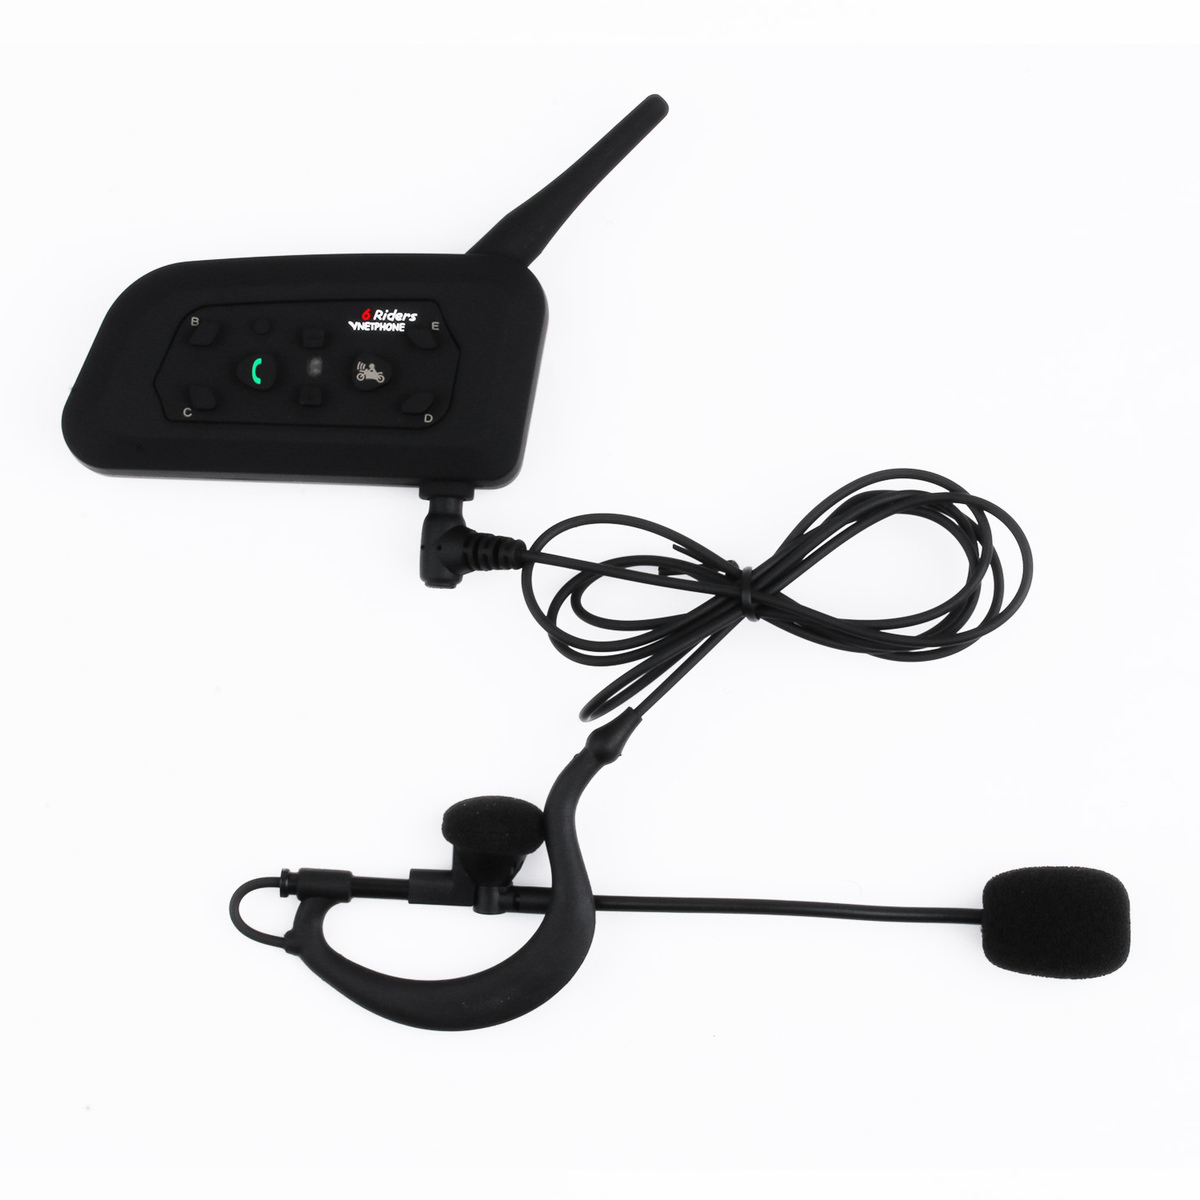 VNETPHONE Football arbitre oreille unique écouteurs Bluetooth casque 1200 M talkie-walkie V6C